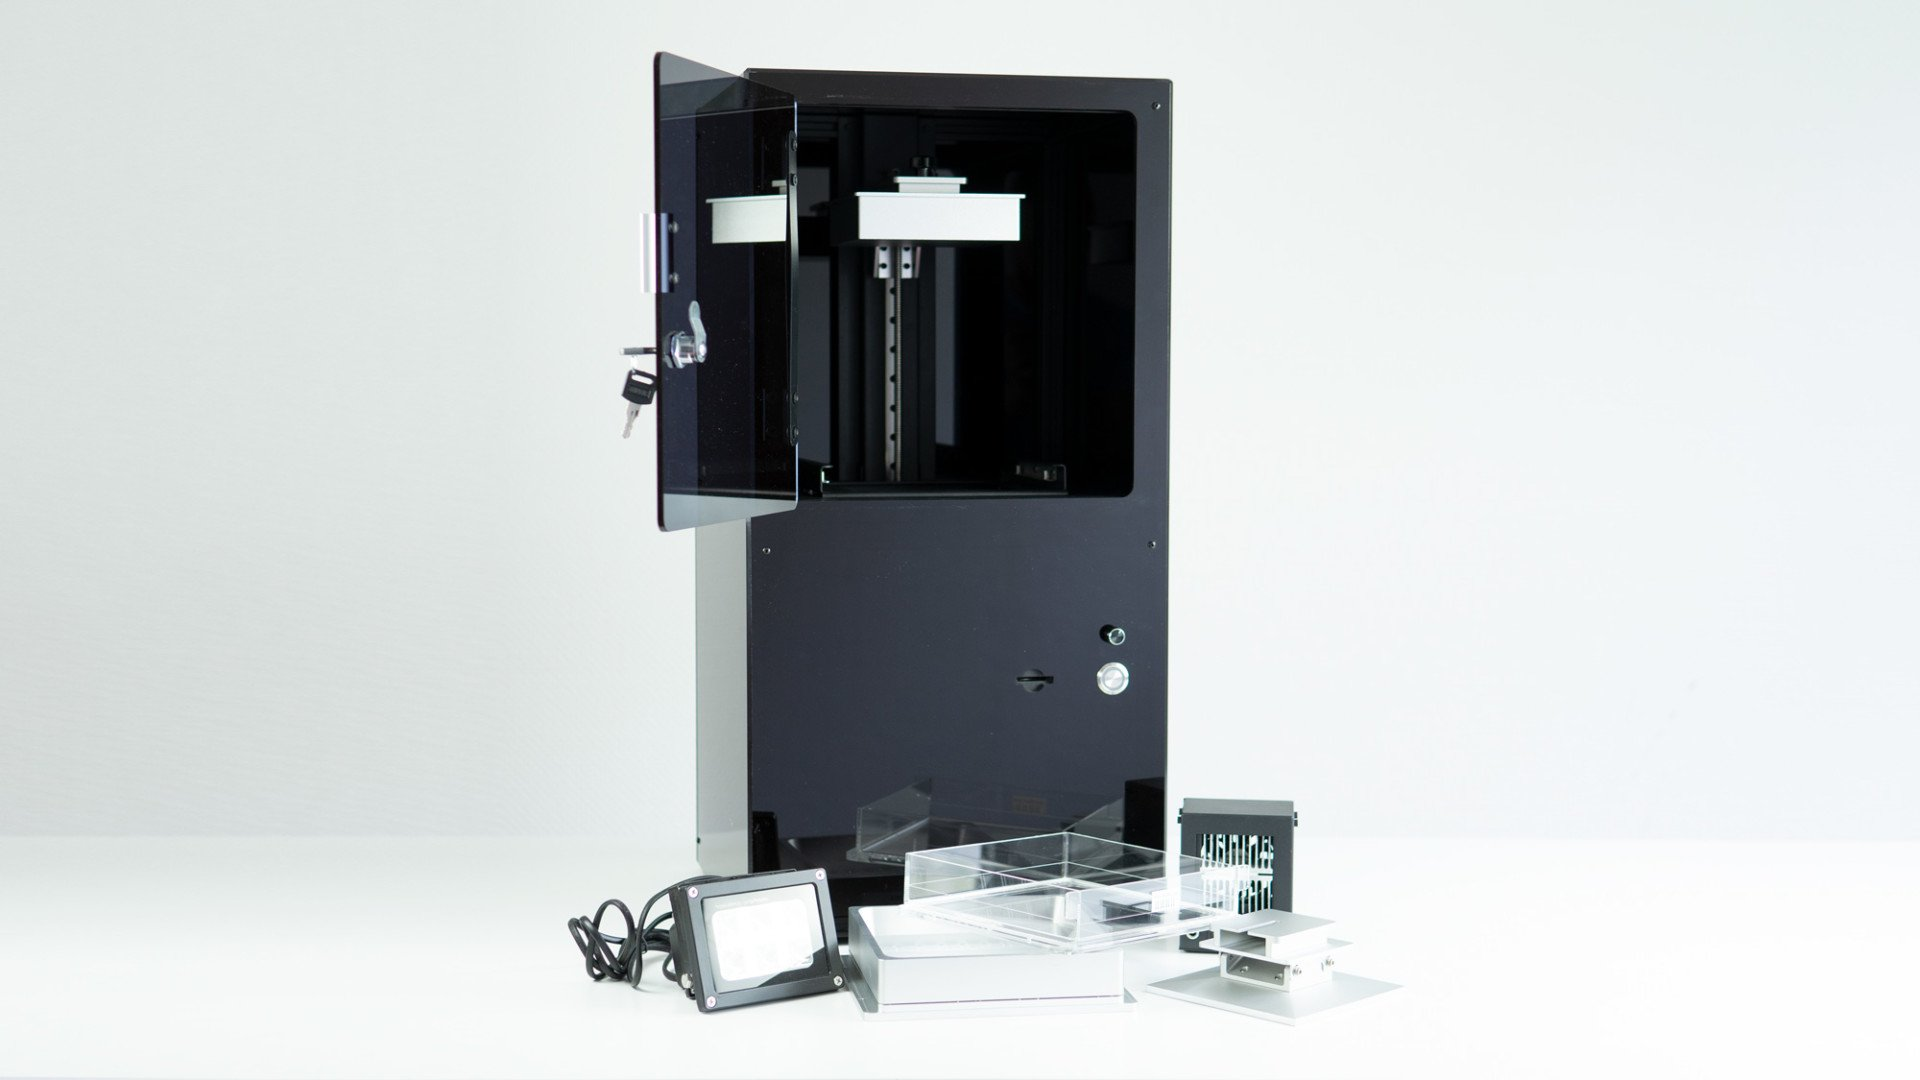 Peopoly Moai 130 Review: Best Value Resin 3D Printer | All3DP